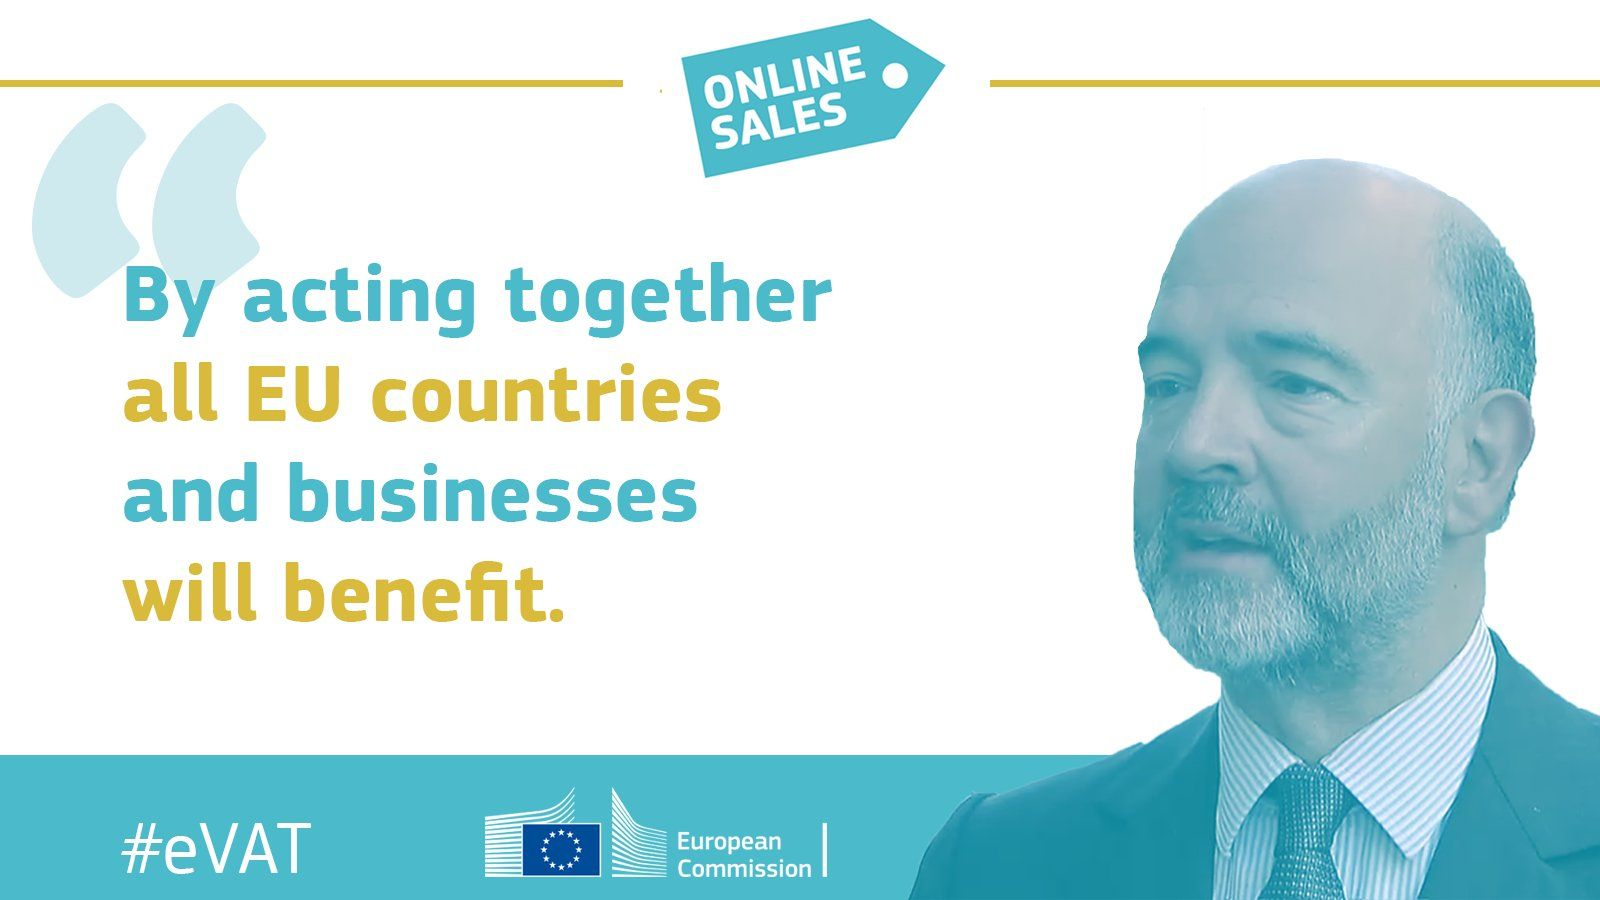 #ecommerce RT pierremoscovici: Good news for public finances: VAT revenues expected to rise by 5-7 billion by 202 http://pic.twitter.com/XzWioRPrJr   eCommerce Dev World (@eC0mmerceDev) December 1 2016